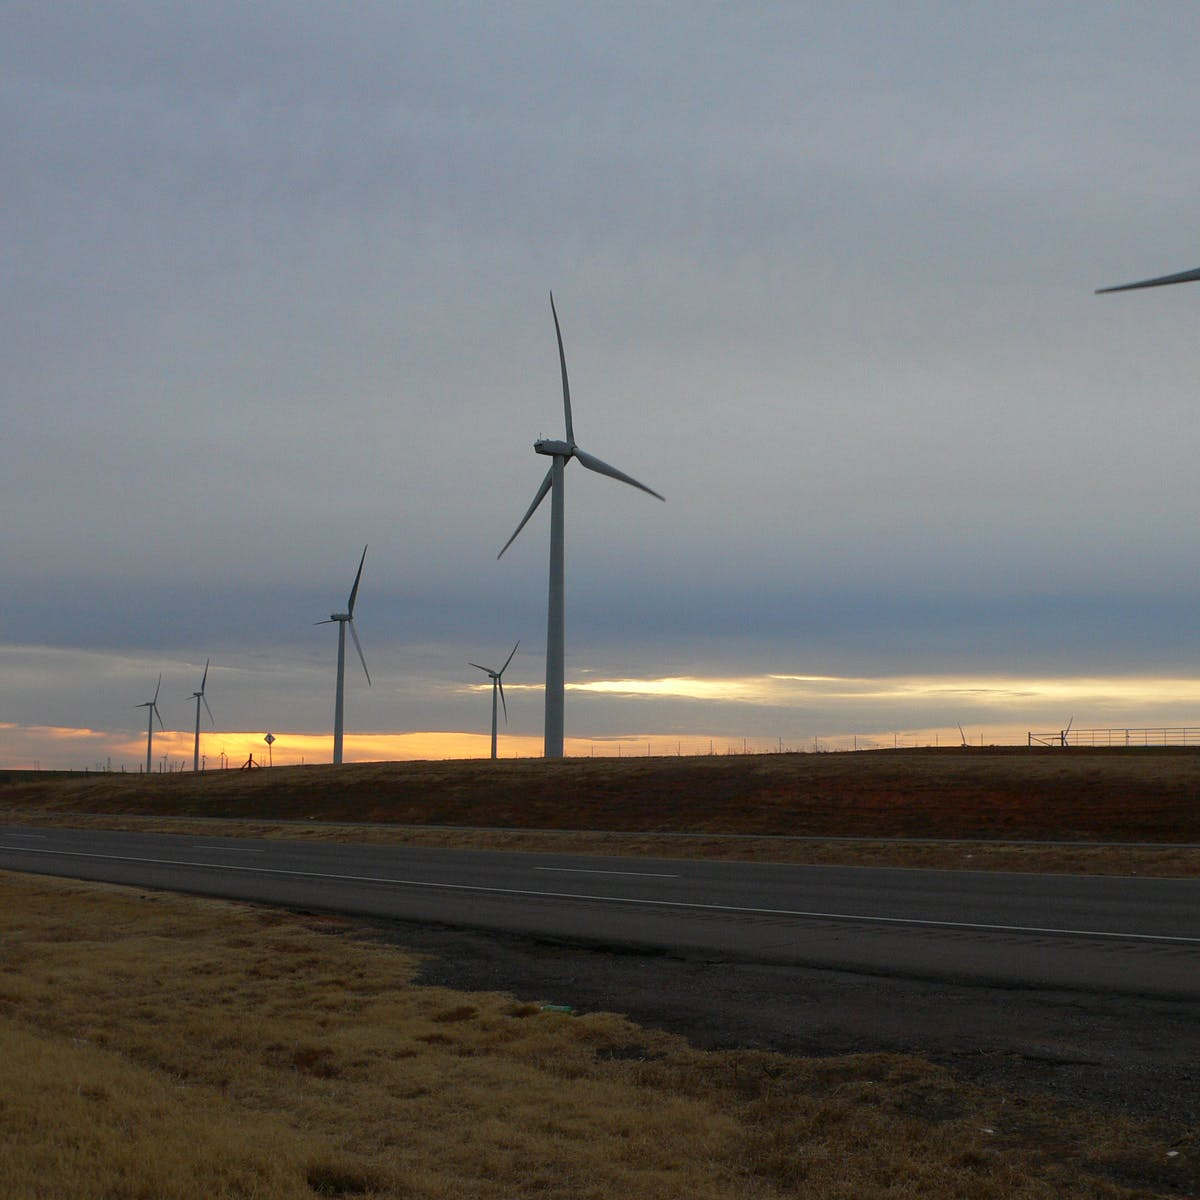 If we keep subsidizing wind, will the cost of wind energy go